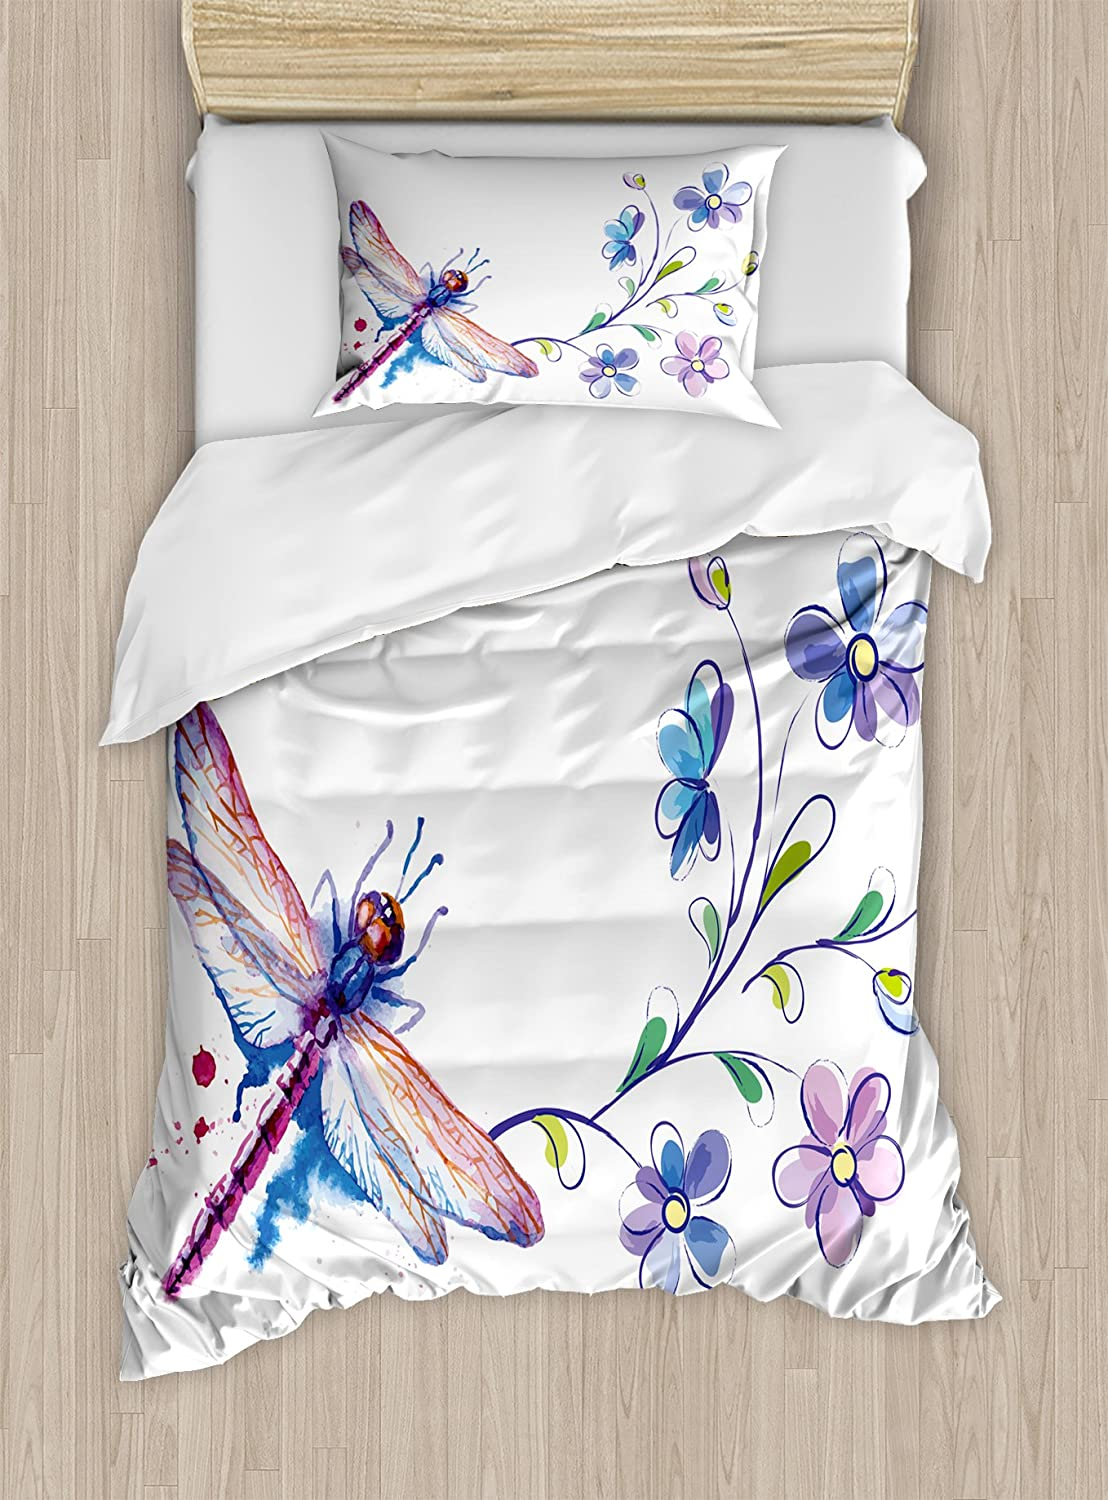 Ambesonne Dragonfly Duvet Cover Set, Watercolor Bug Butterfly Like Moth with Branch Ivy Flowers Lilies Art, Decorative 2 Piece Bedding Set with 1 Pillow Sham, Twin Size, Green Purple and Blue